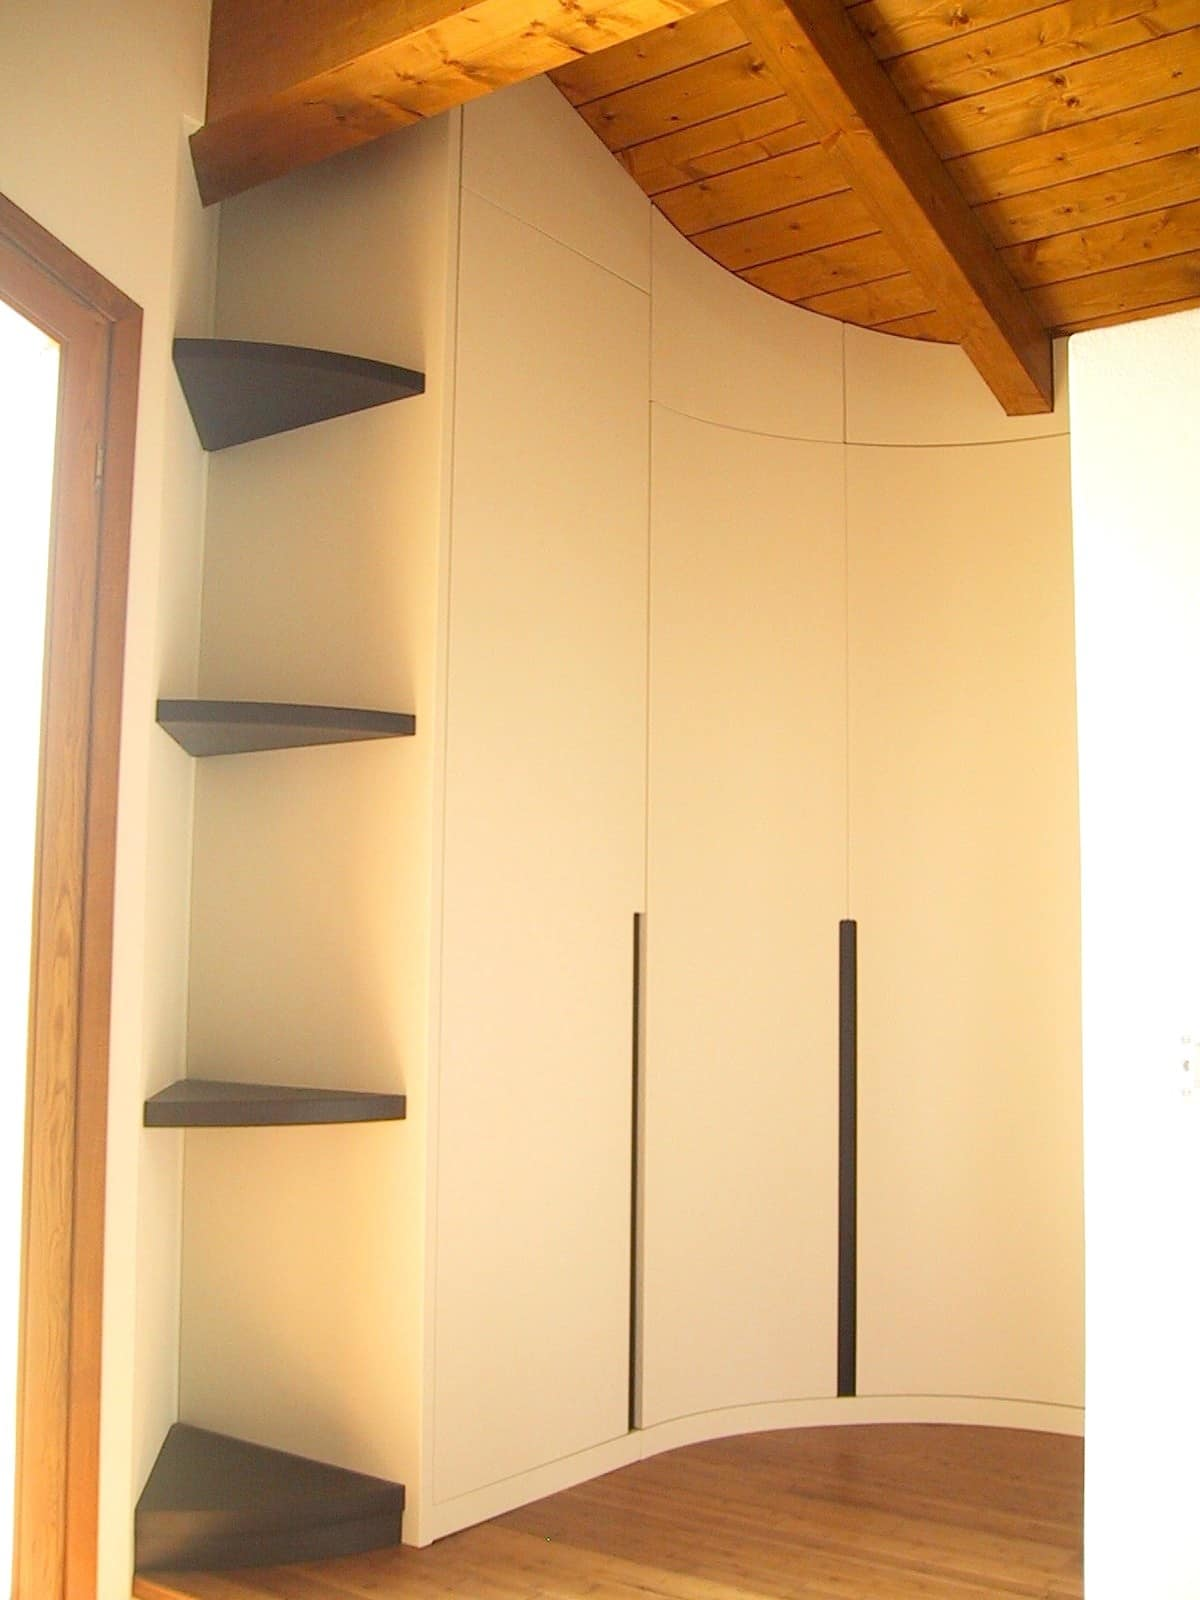 Closet for under-roof rooms 05, Wardrobe customizable to the attic, with an exclusive design